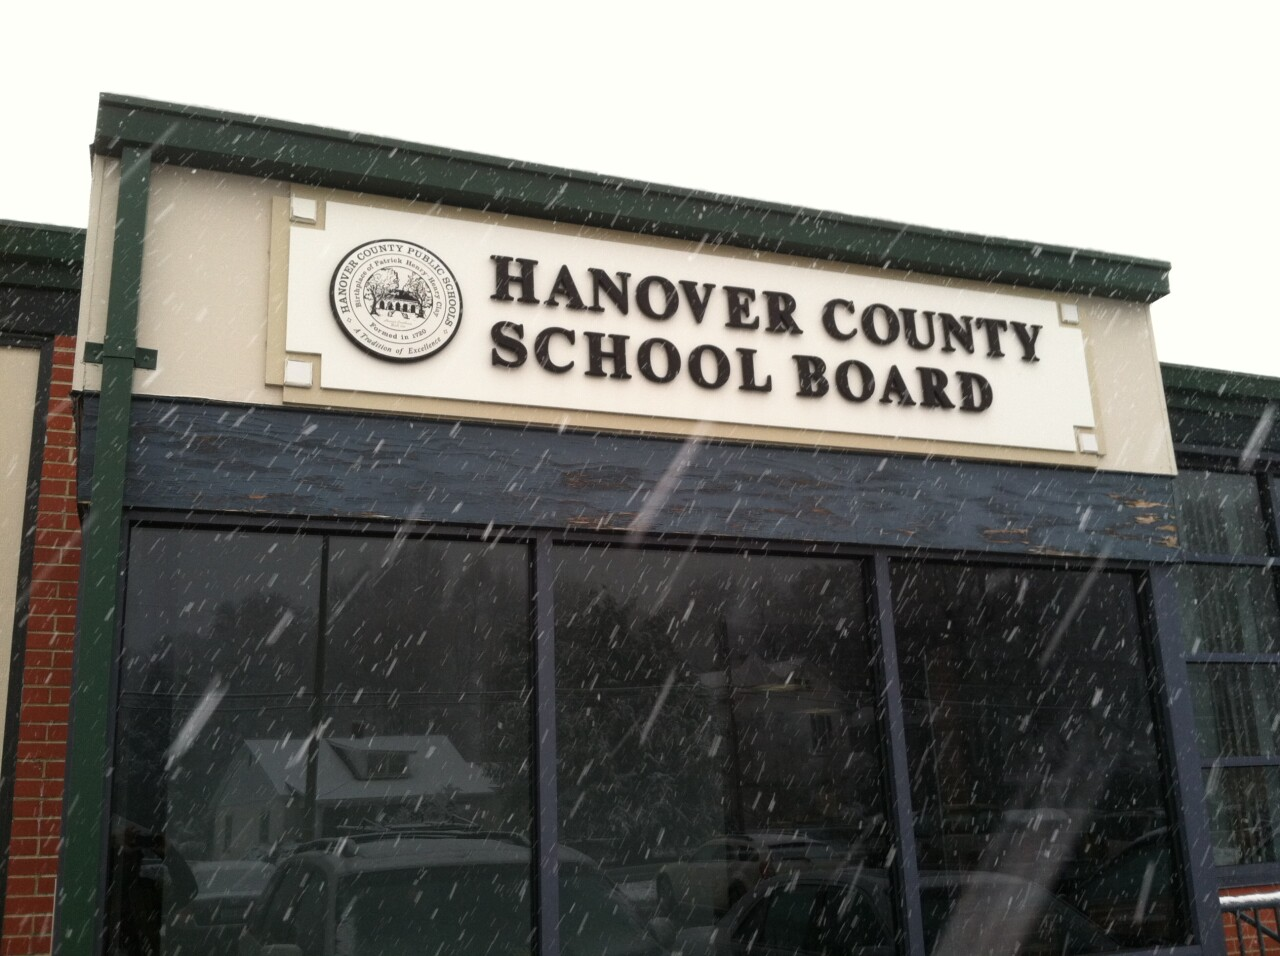 Hanover County schools explain decision to remain open without snow delay